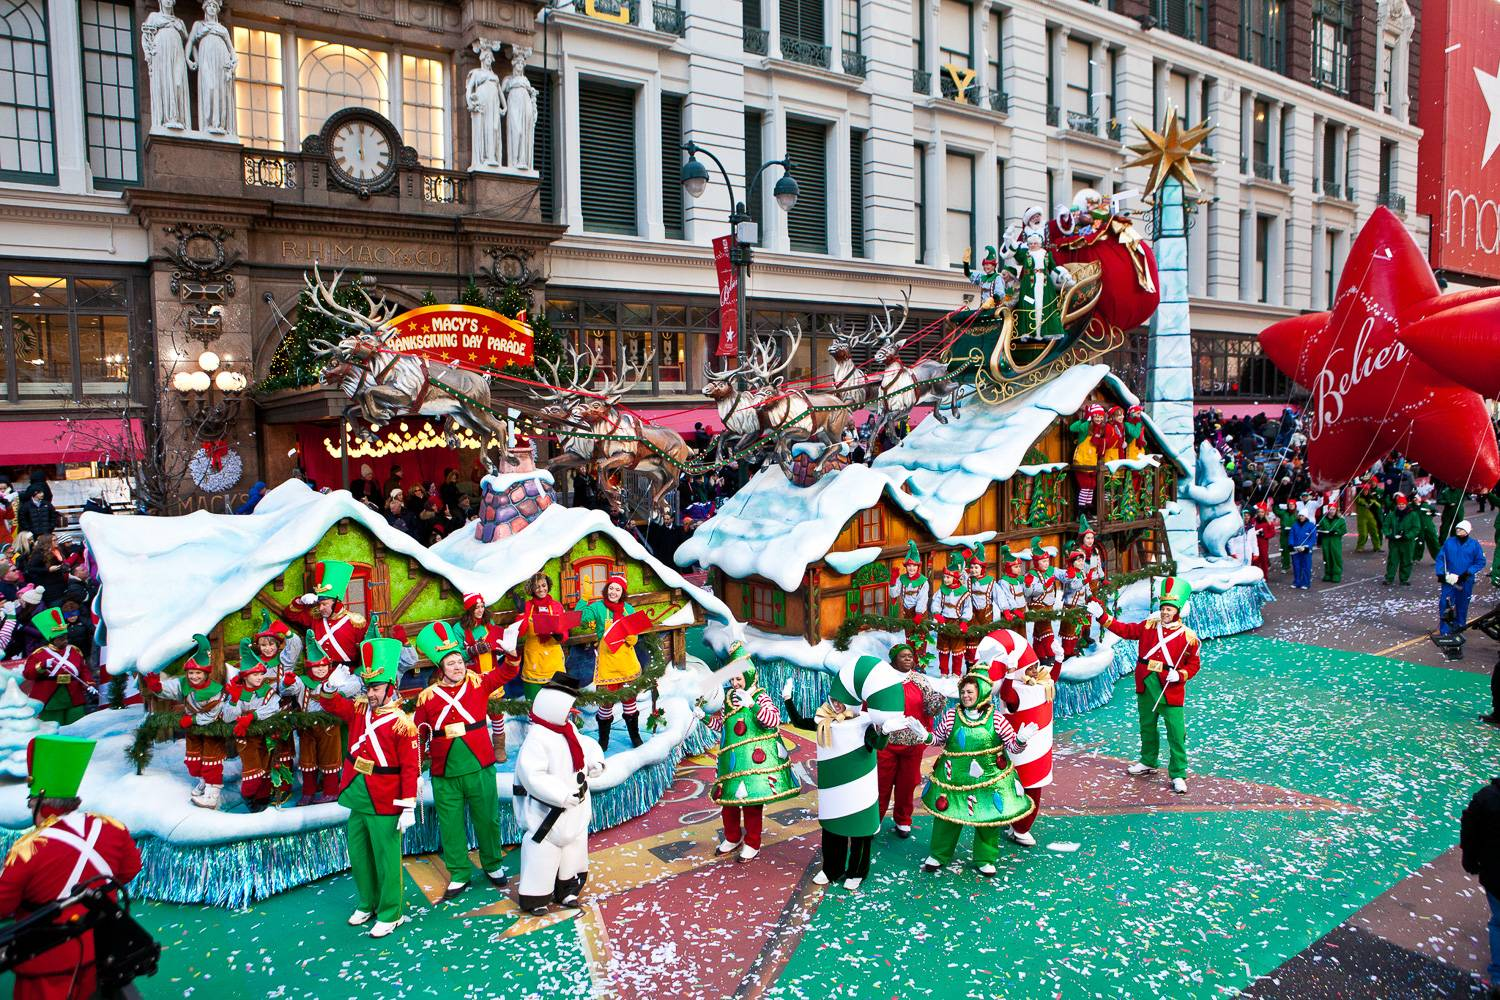 Image of Santa Claus on a Christmas-themed float in the Macy's Thanksgiving Day Parade in Herald Square